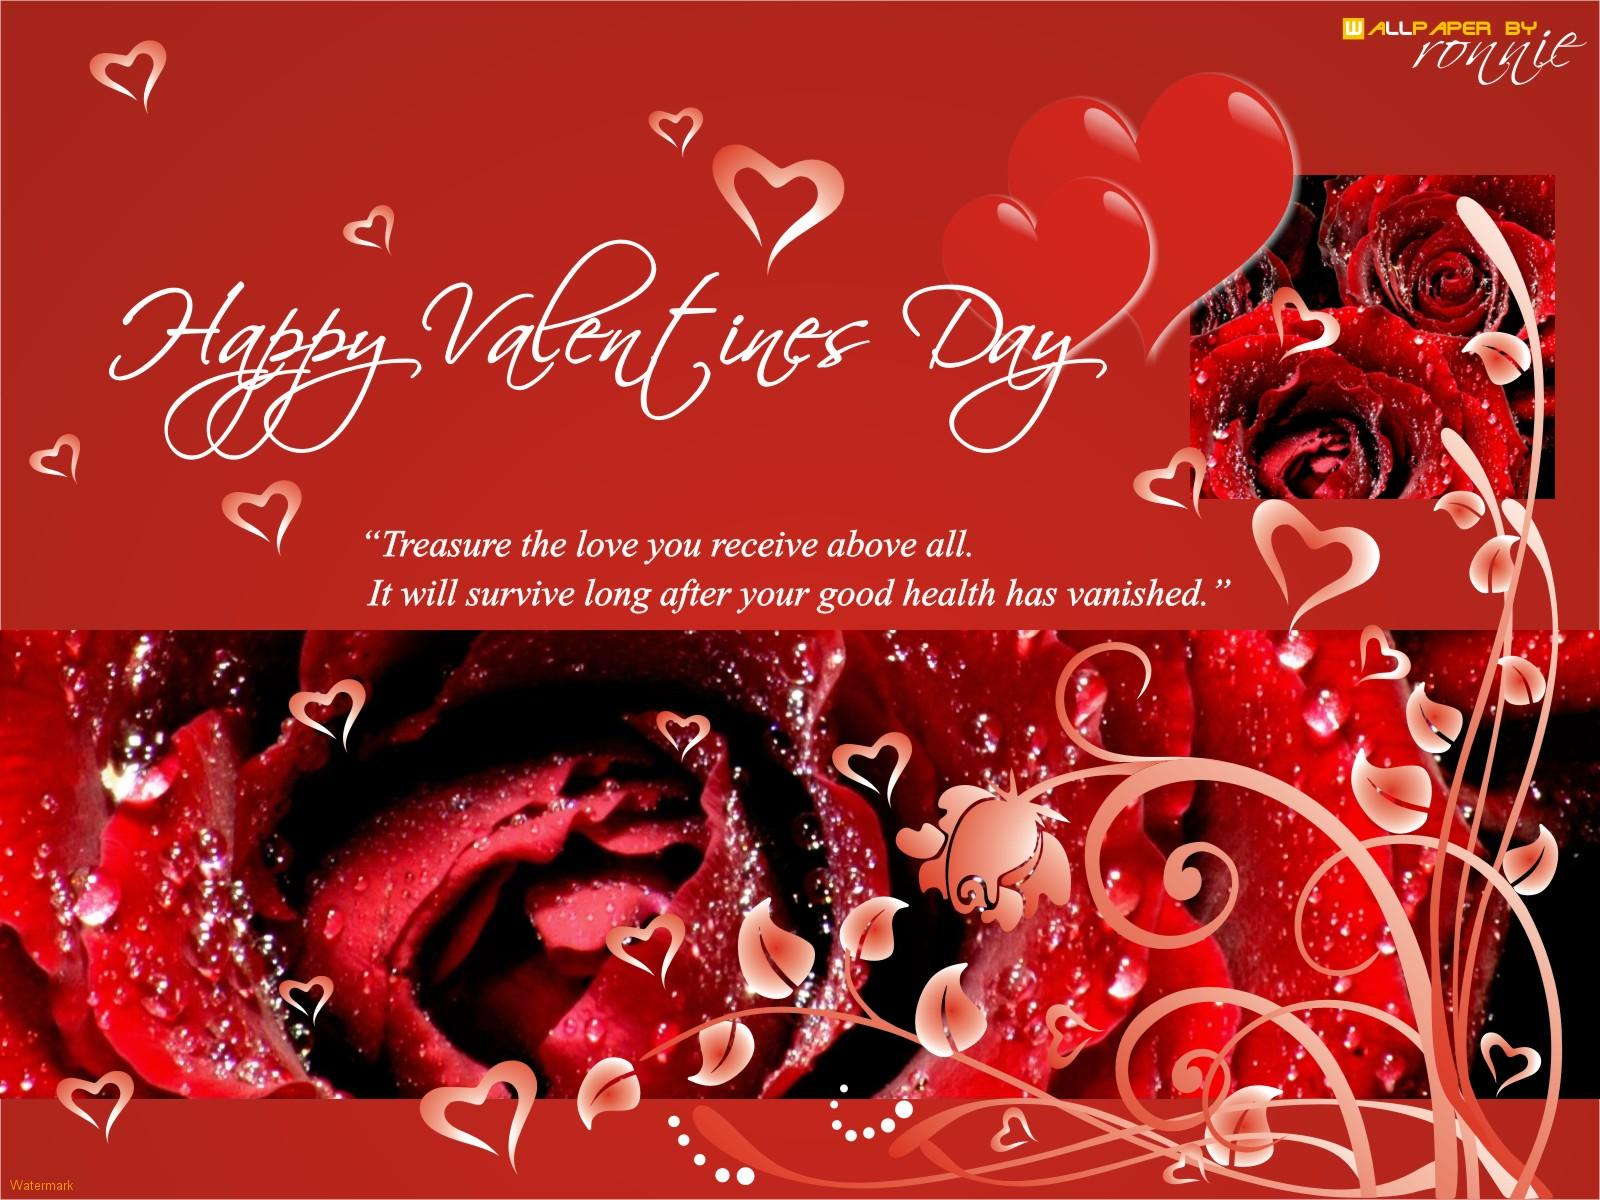 Happy Valentines Day.6 Free Valentines Greeting Cards With Music 2014